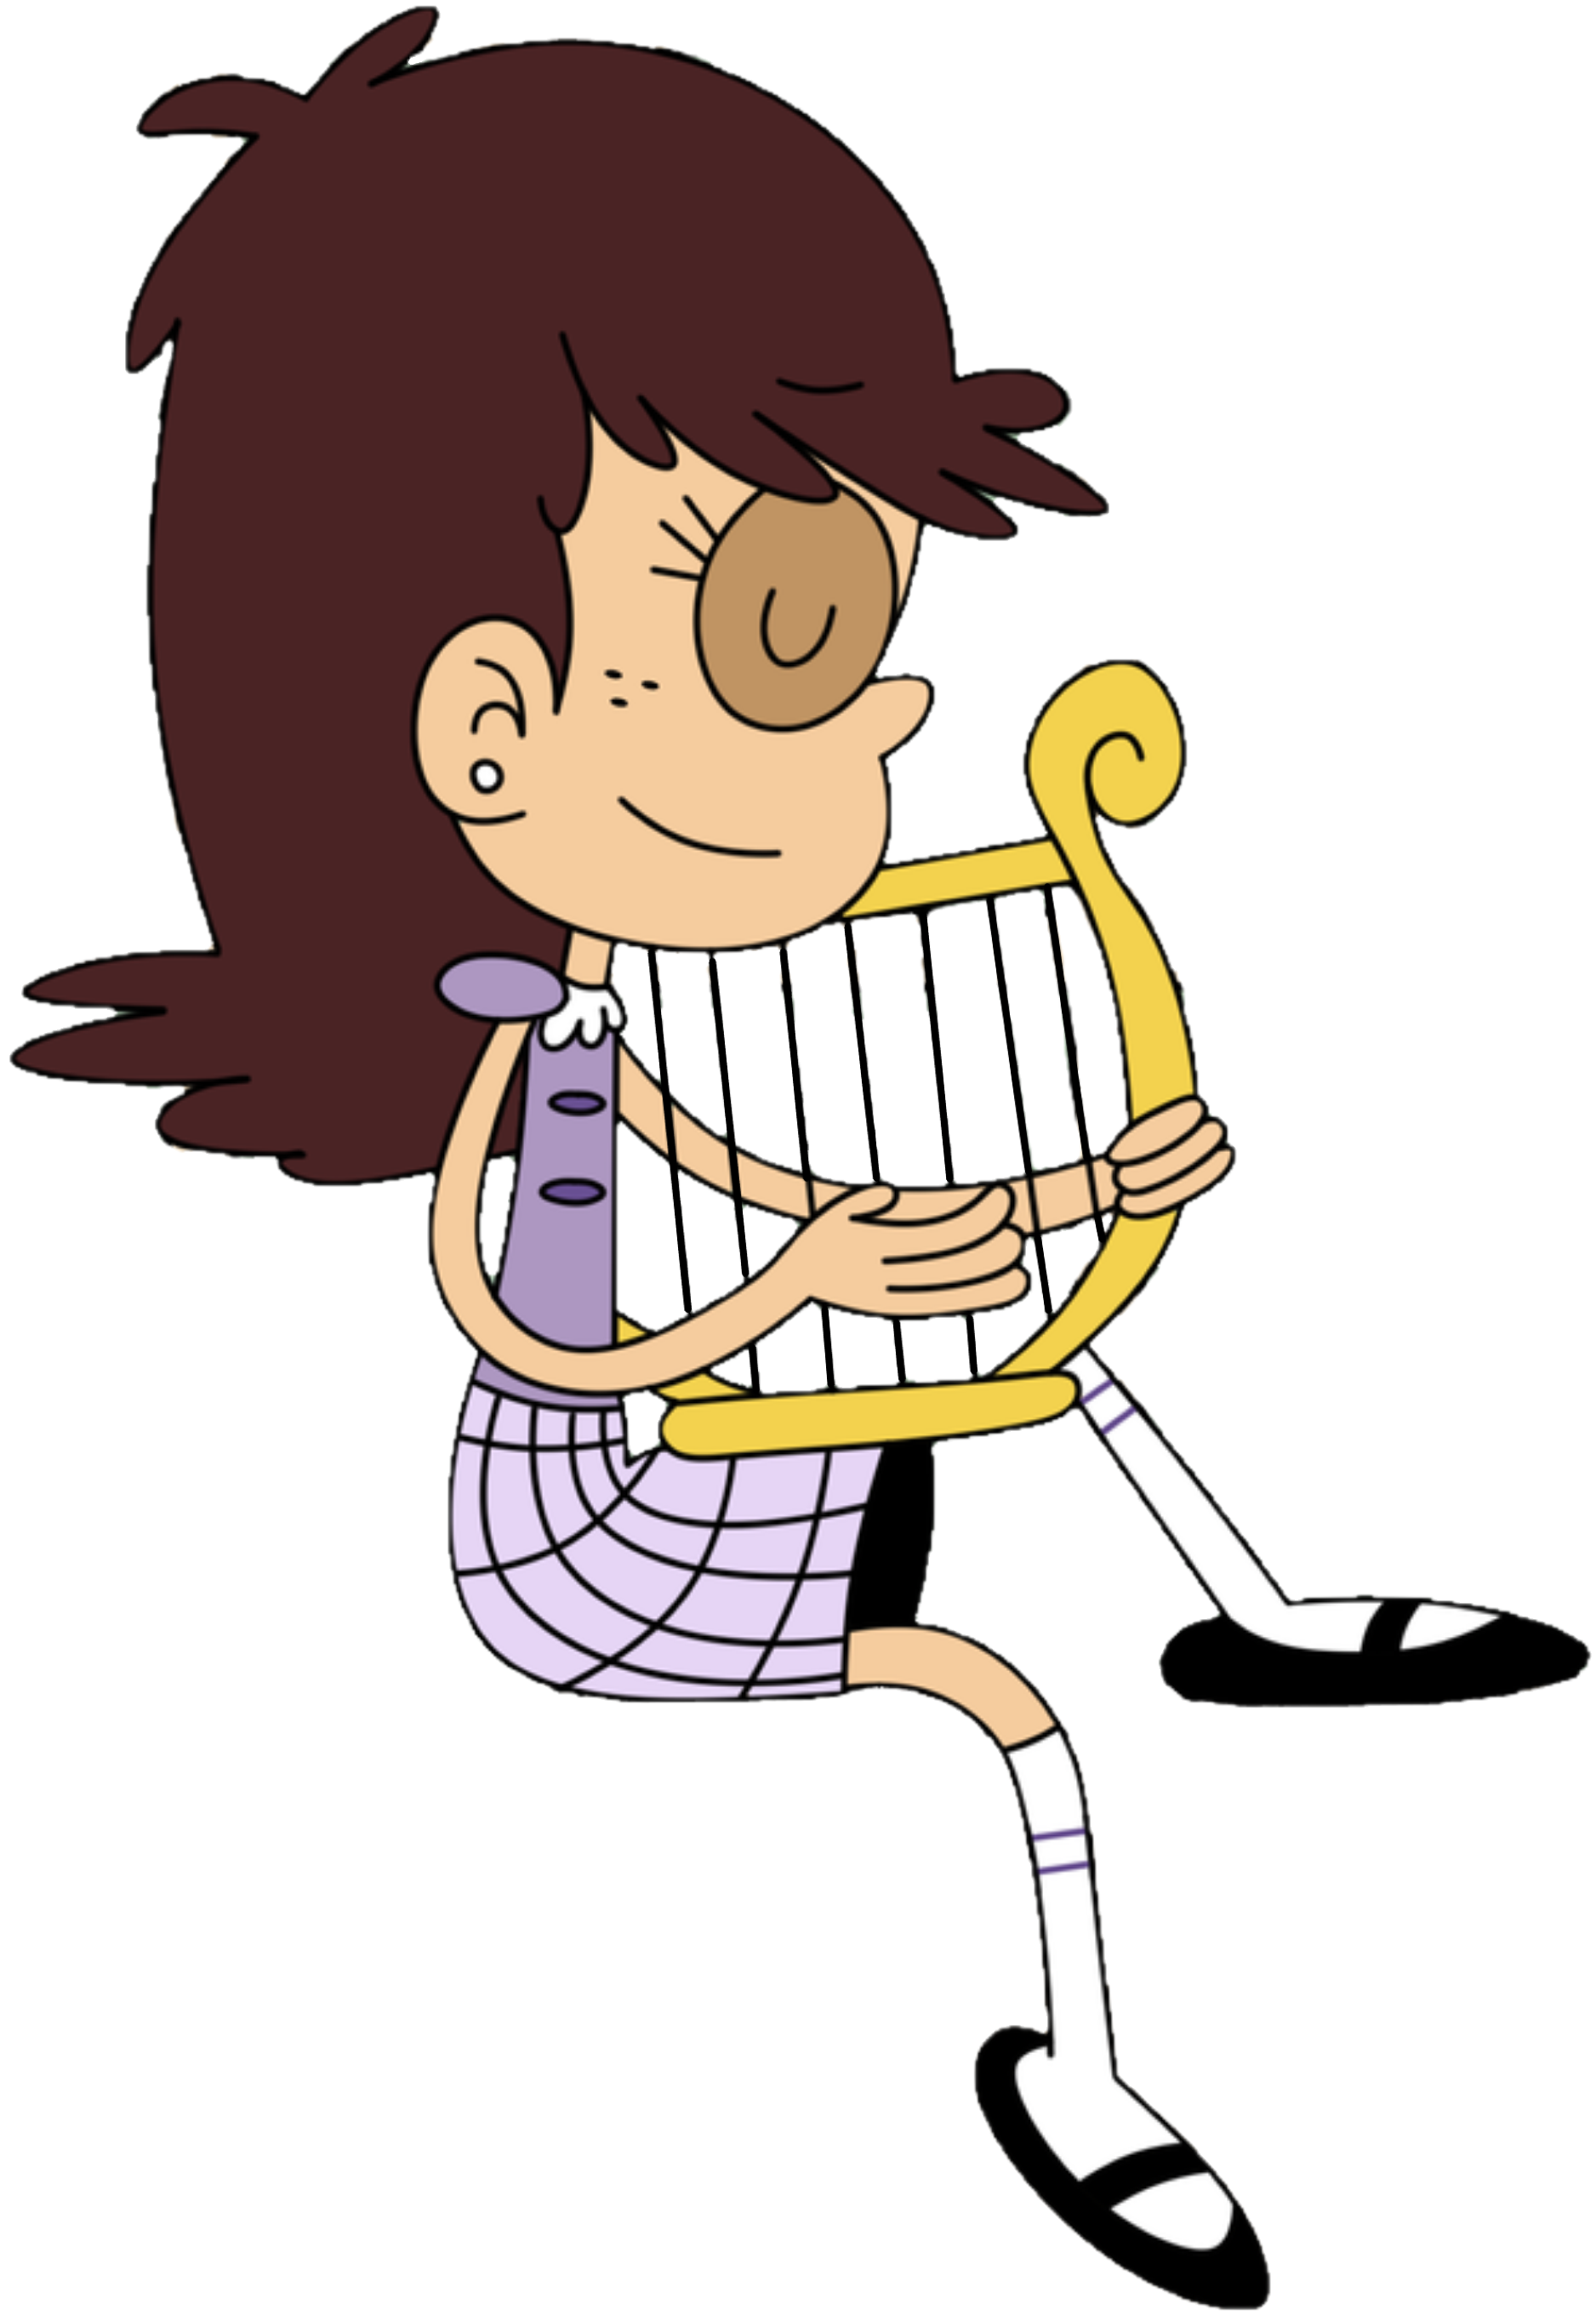 Image young luna plays. Clipart phone loud person